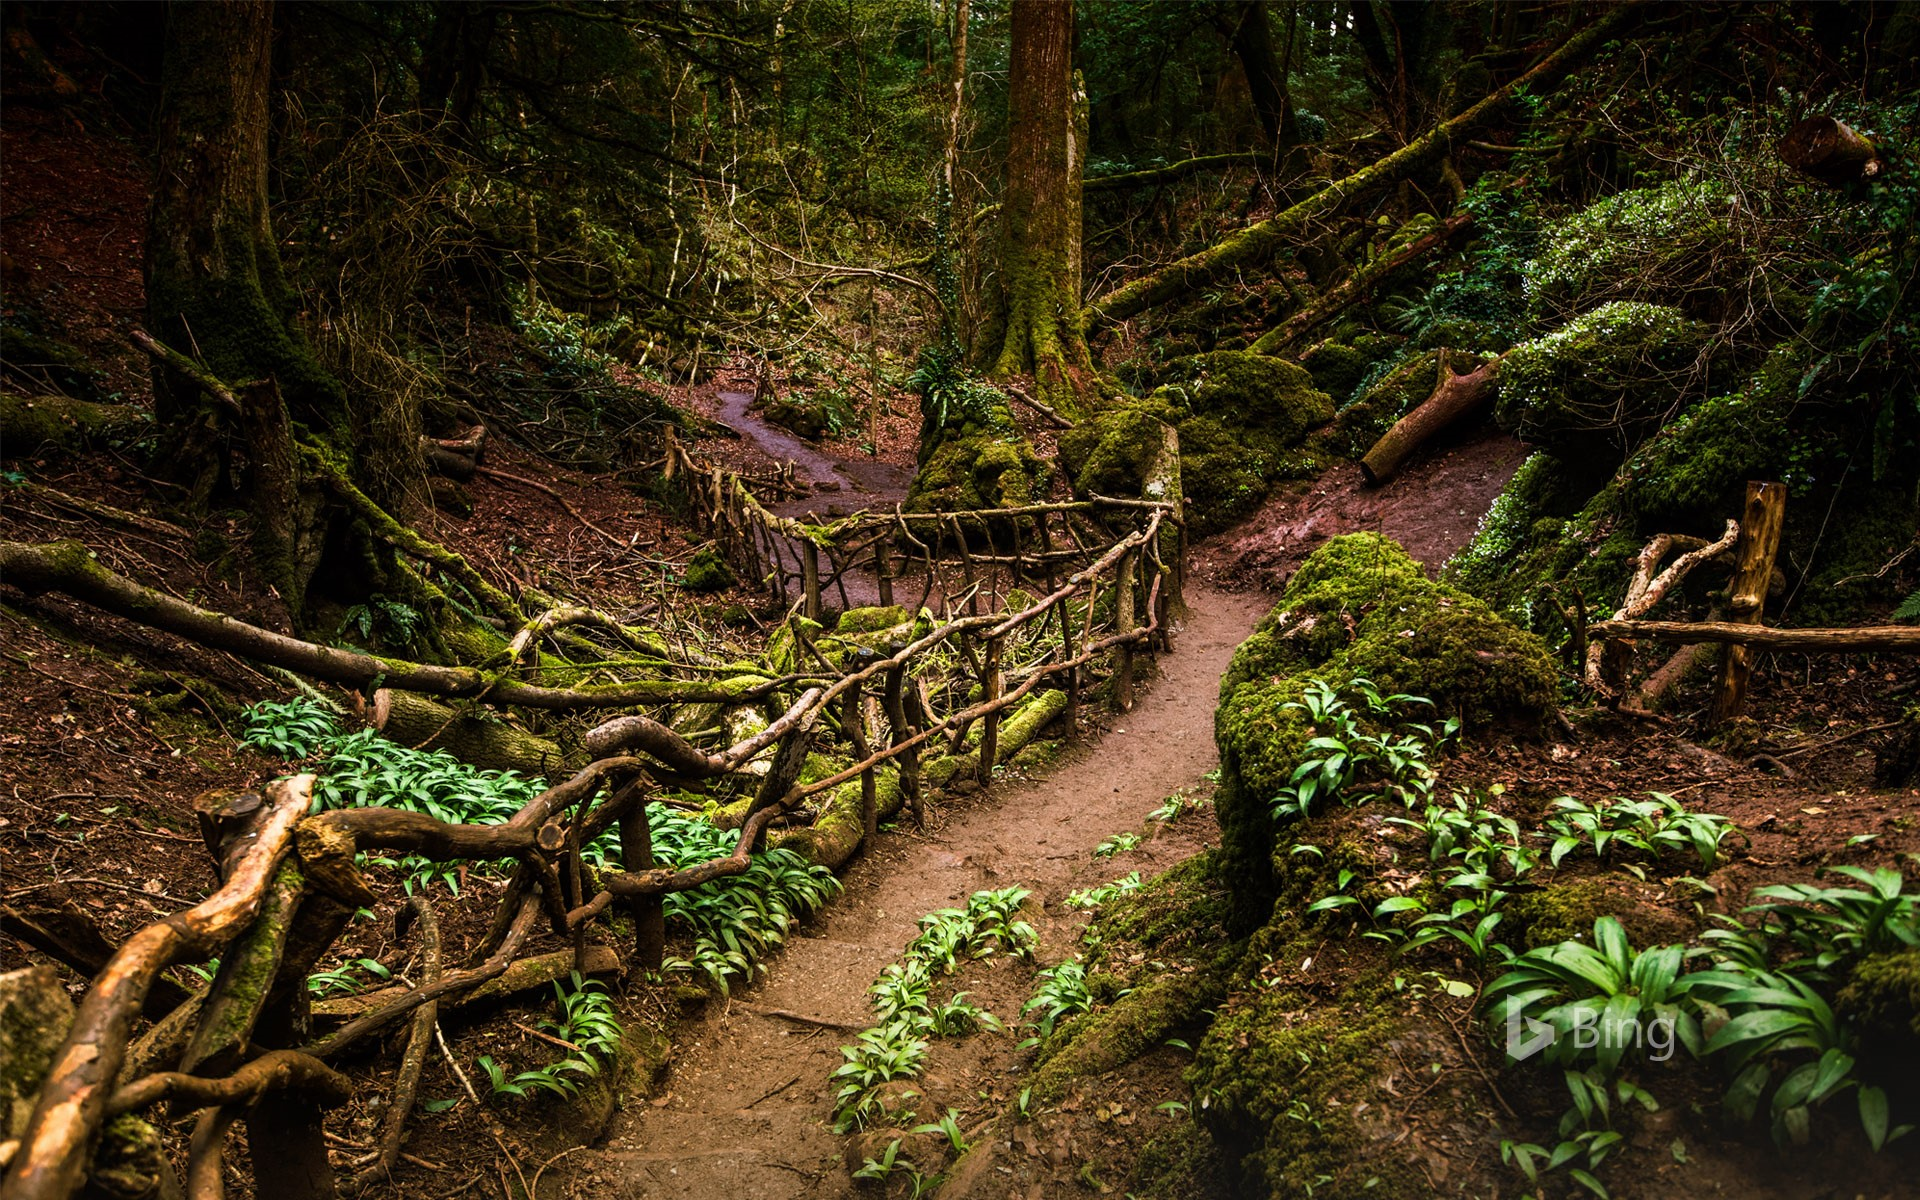 Path through Puzzlewood, Forest of Dean, Gloucestershire